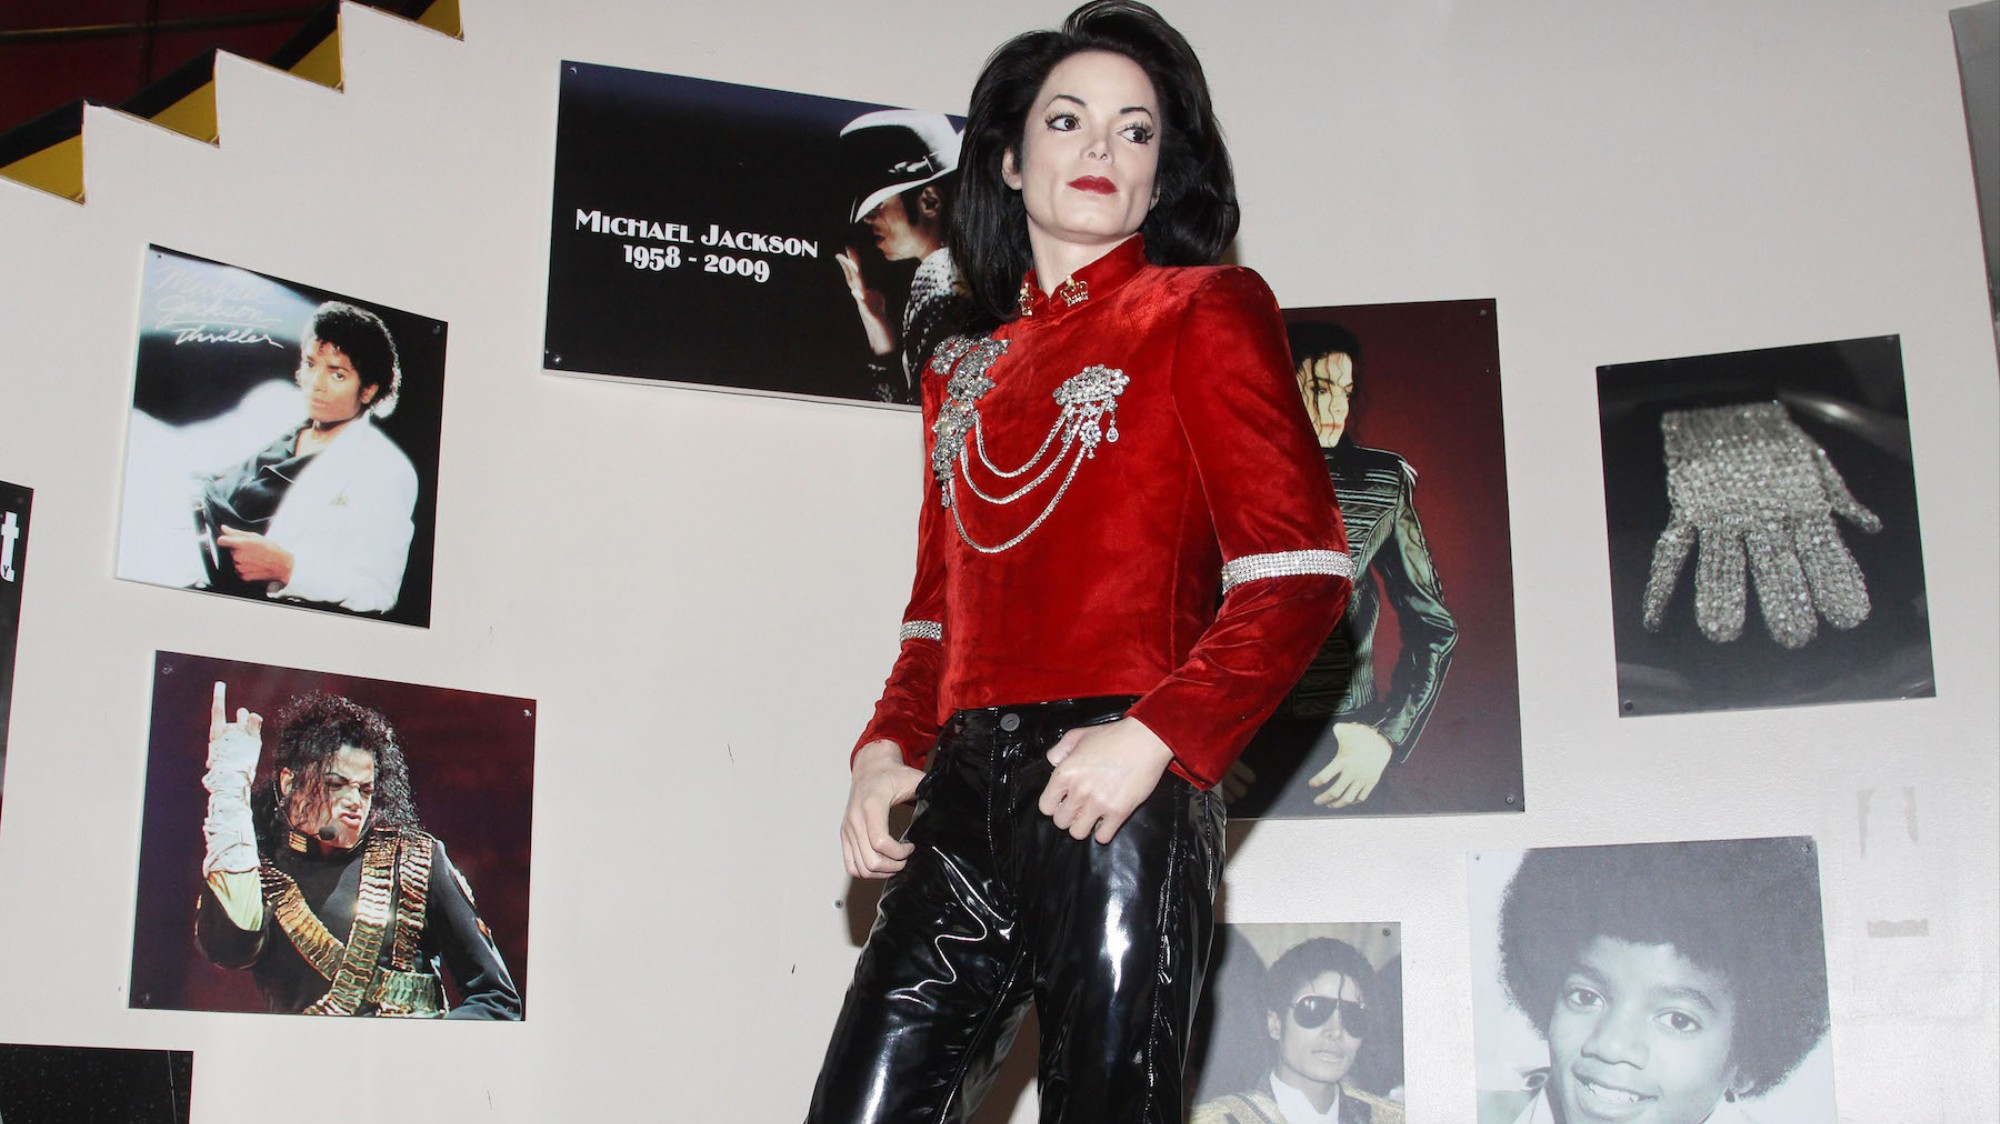 Is Michael Jackson Still Alive? These Fans Think So